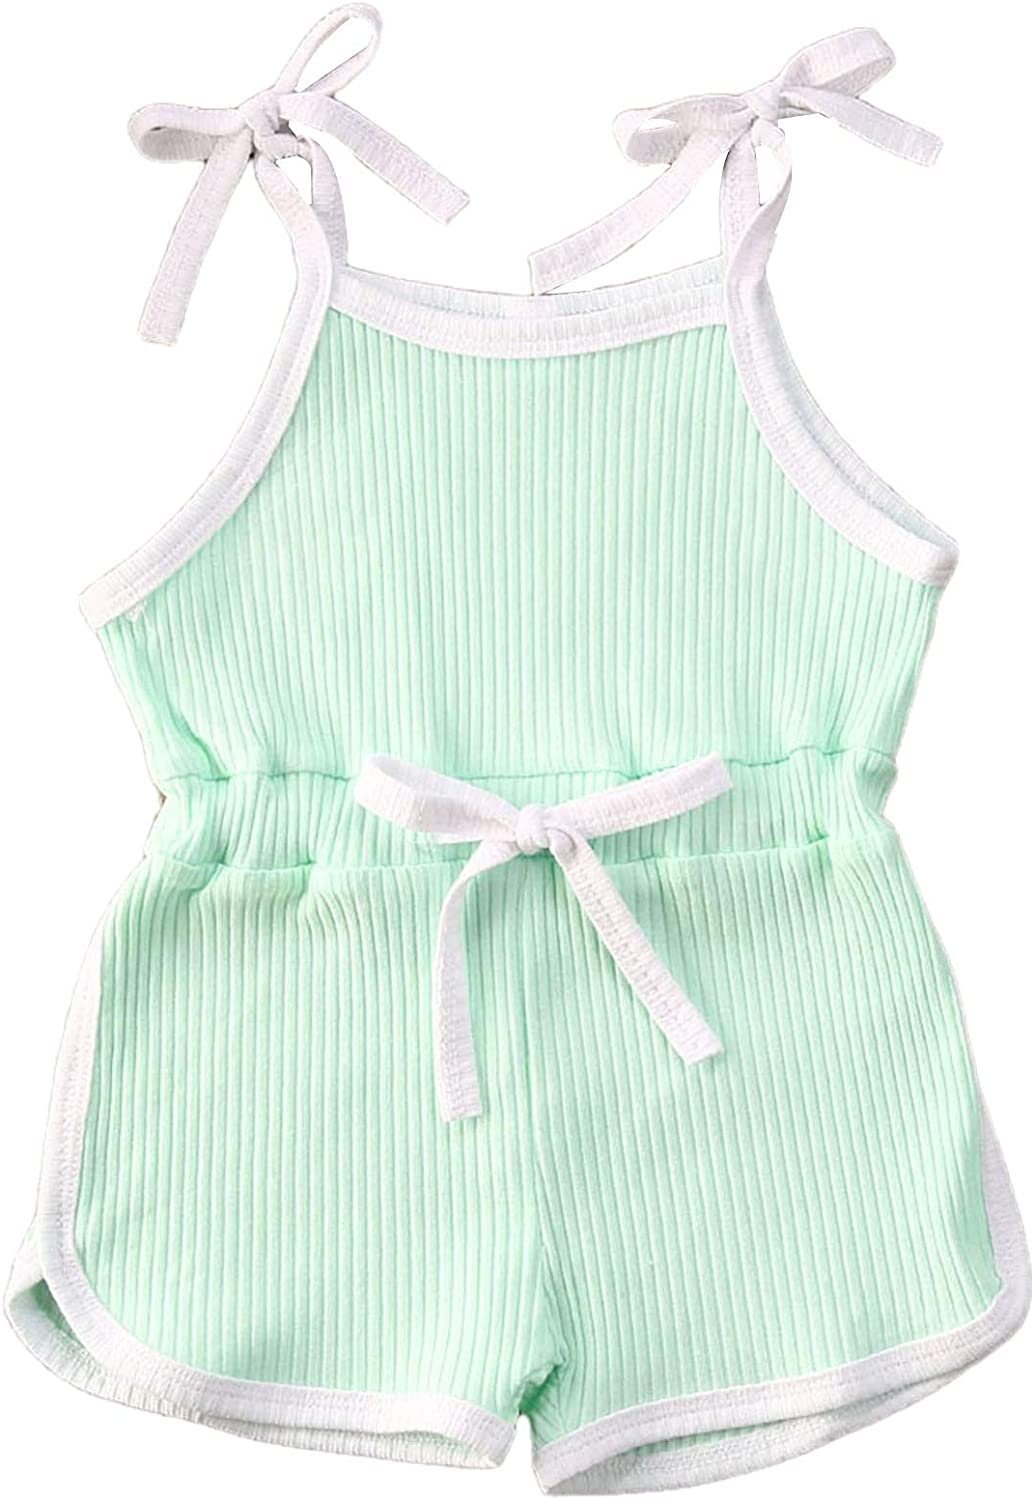 WANGSCANIS Baby Girl Boy Ruffle One-Pieces Summer Romper Newborn Toddler Short Sleeve Bodysuit Outfits 0-24 Months Clothes